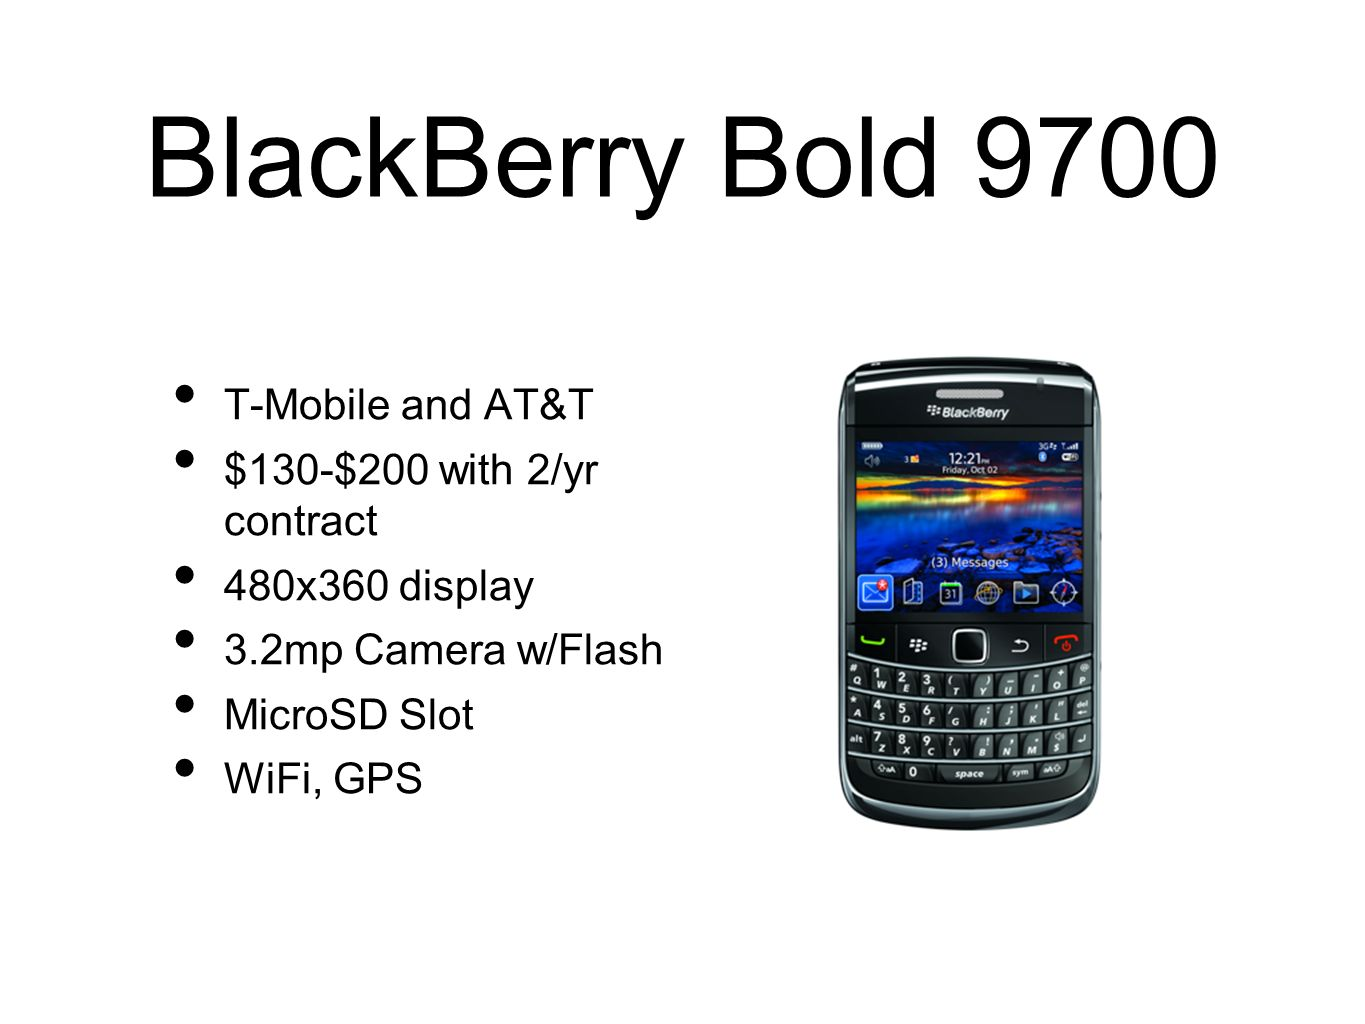 BlackBerry Bold 9700 T-Mobile and AT&T $130-$200 with 2/yr contract 480x360 display 3.2mp Camera w/Flash MicroSD Slot WiFi, GPS